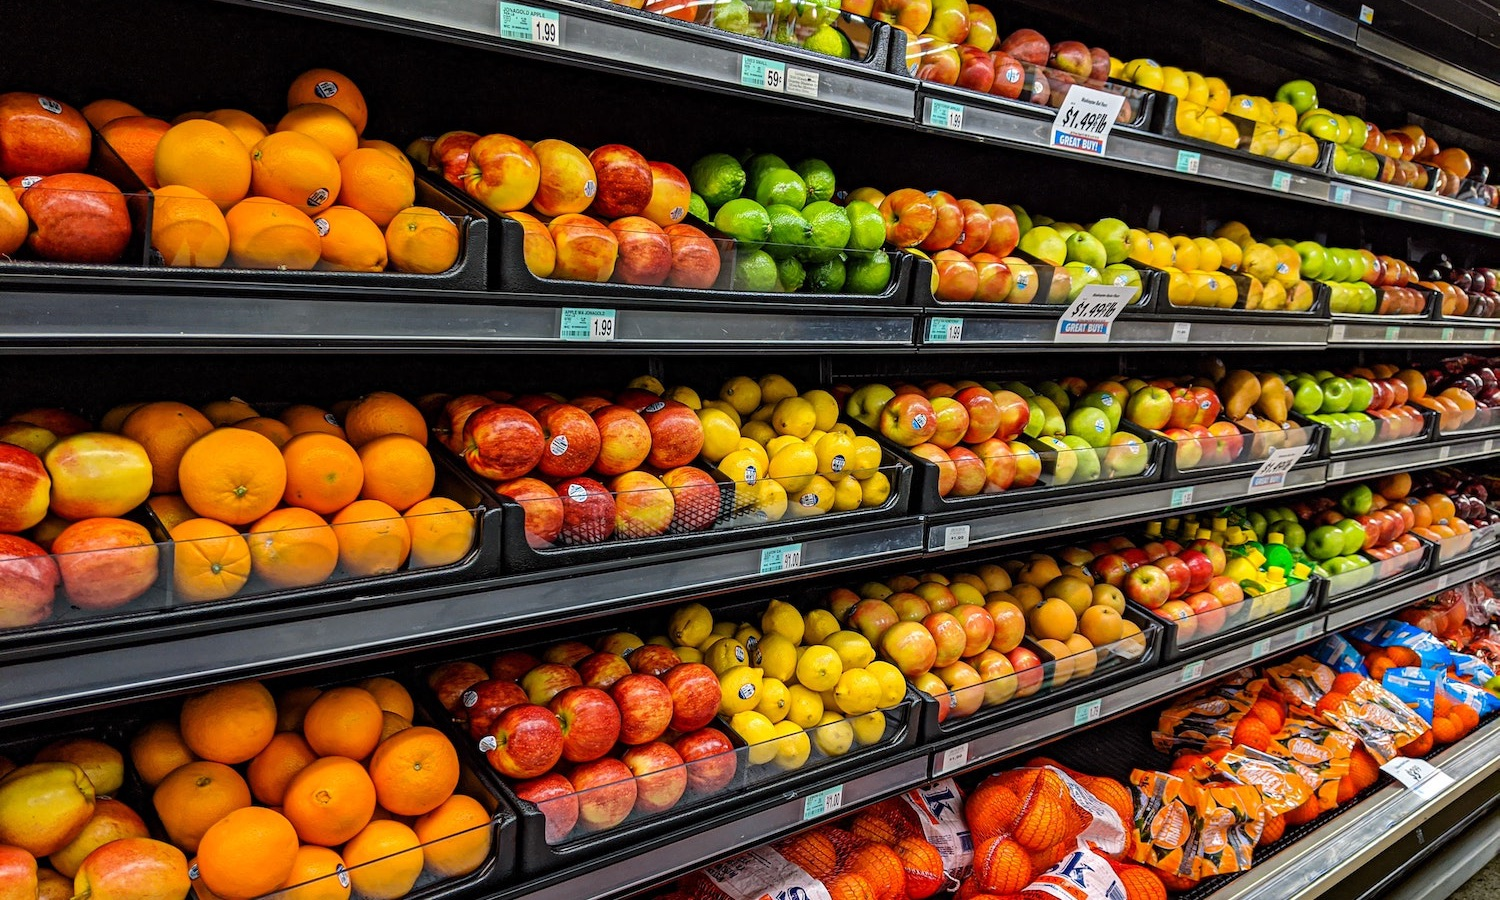 Public Health Institute researchers find nutrition education recipients follow healthier and eating and shopping habits.